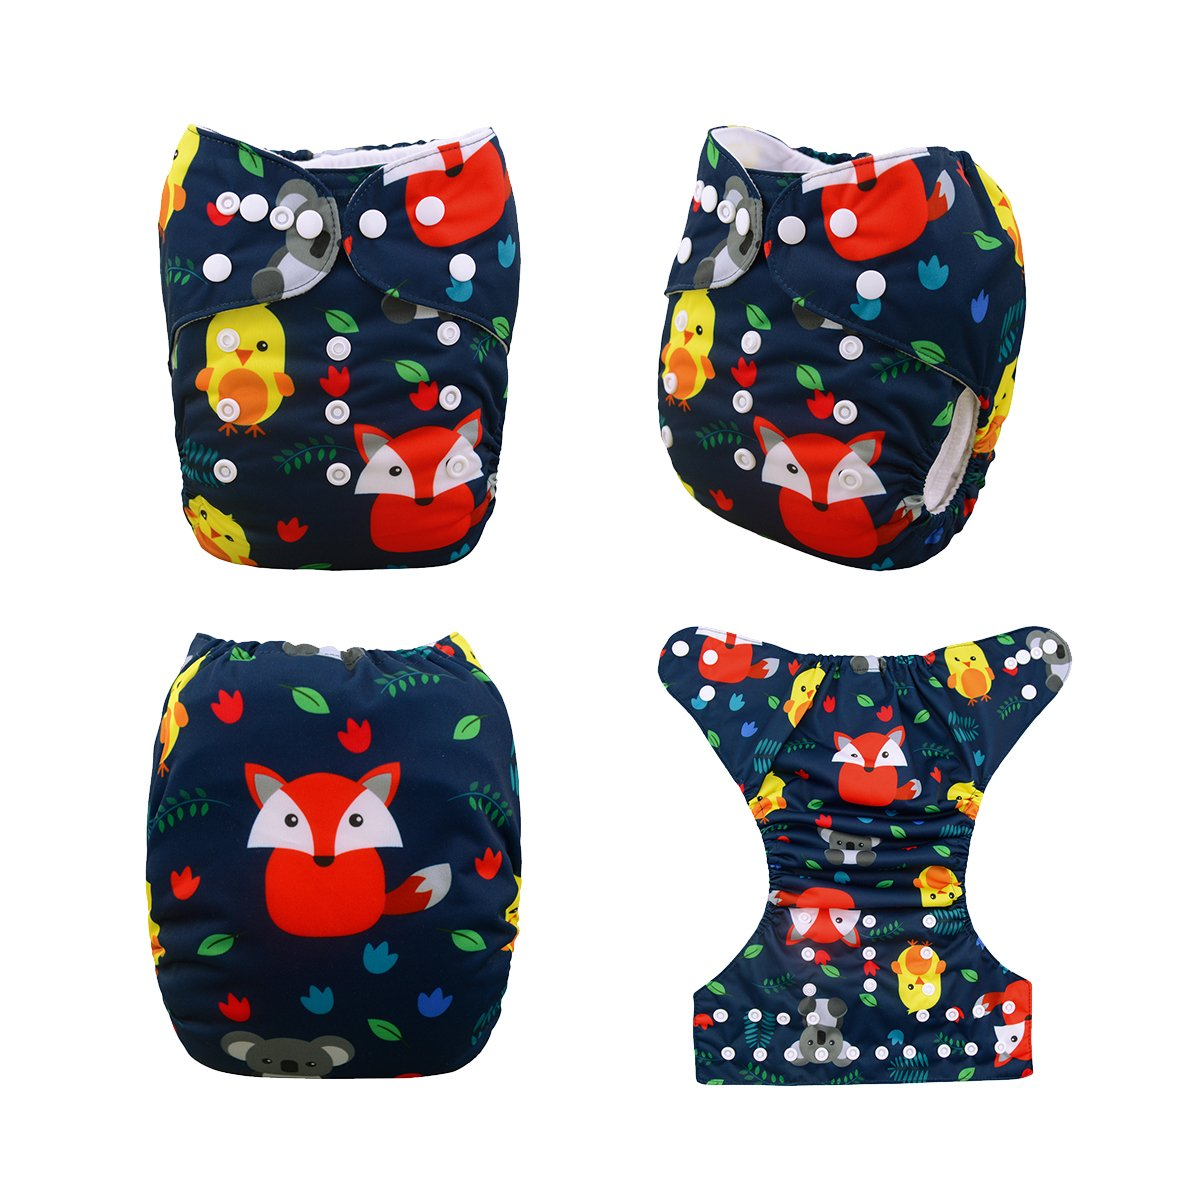 Adjustable Reusable Nappy 6pcs Diapers+6pcs Microfiber Inserts+4pcs Bamboo Inserts 6YDB06 Babygoal Cloth Diapers for Boys